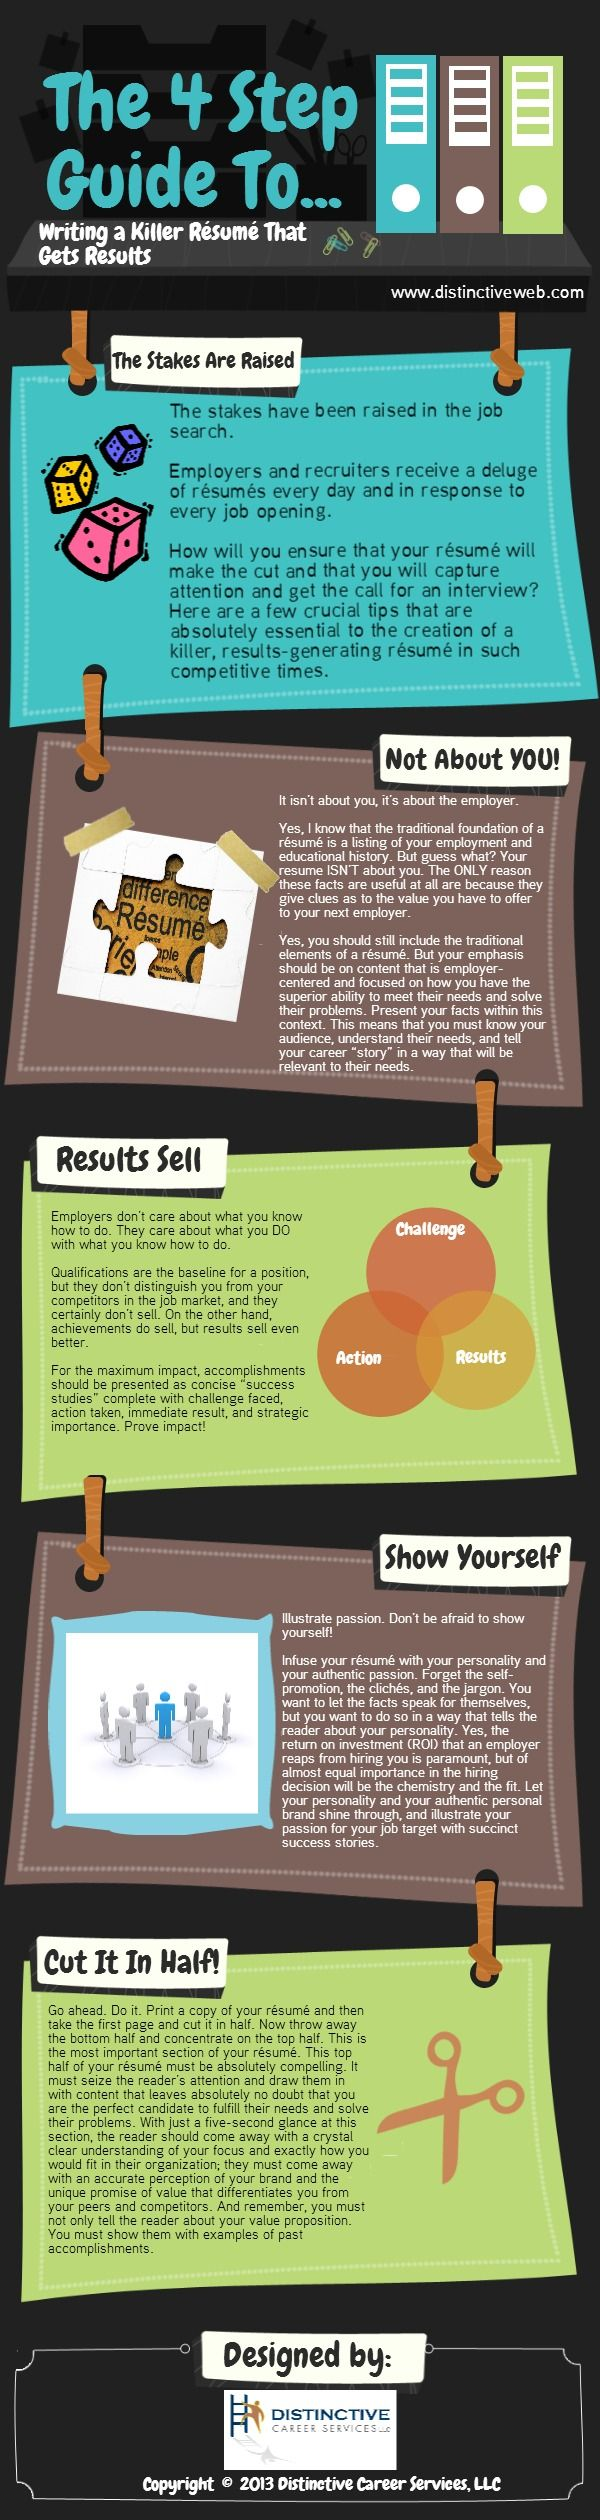 62 Best Career Job Search Infographics Images On Pinterest